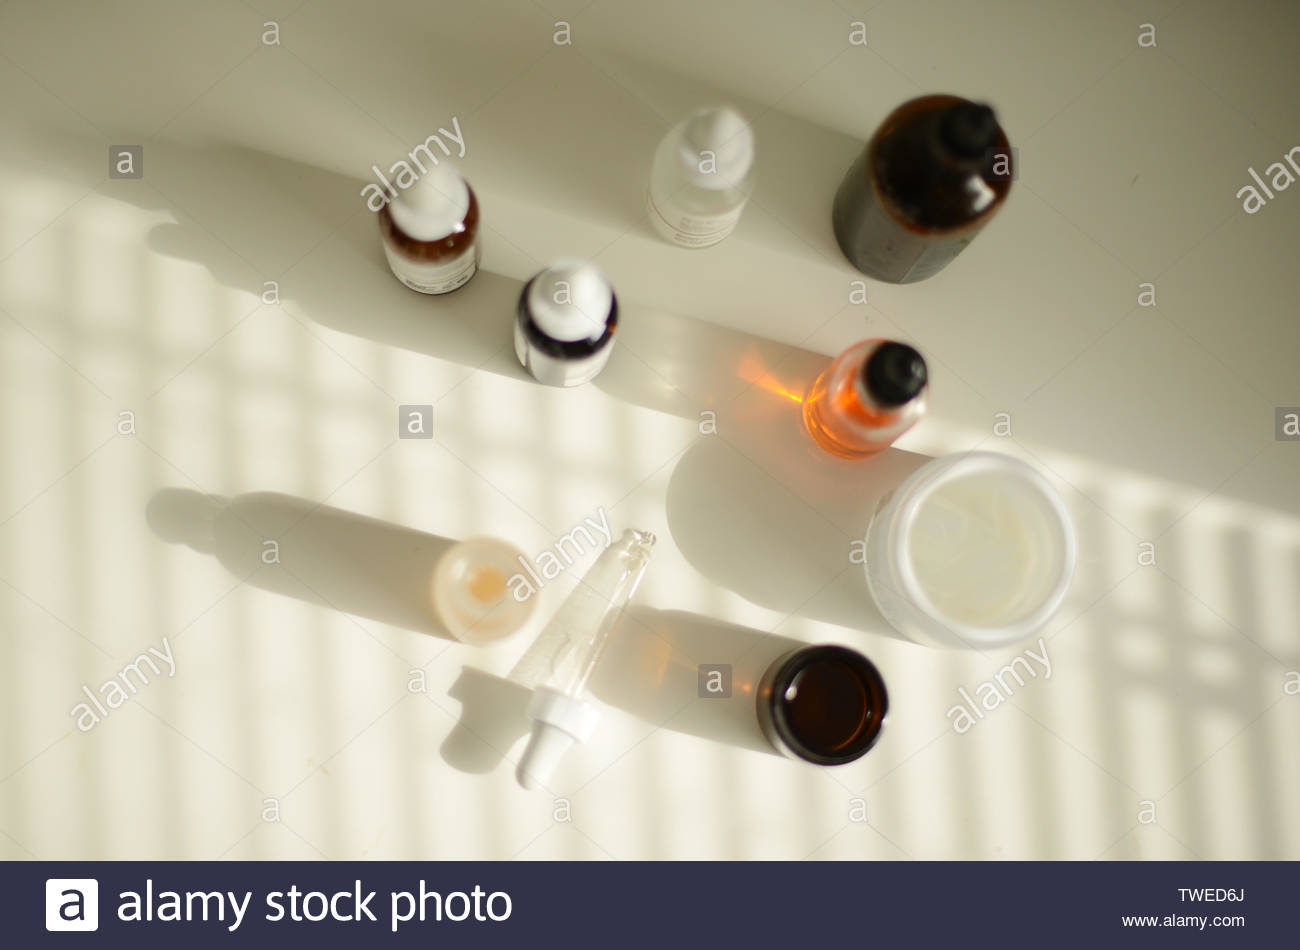 make-up and skin care products on a white table in a beautiful sunlight coming in through blinds - Stock Image